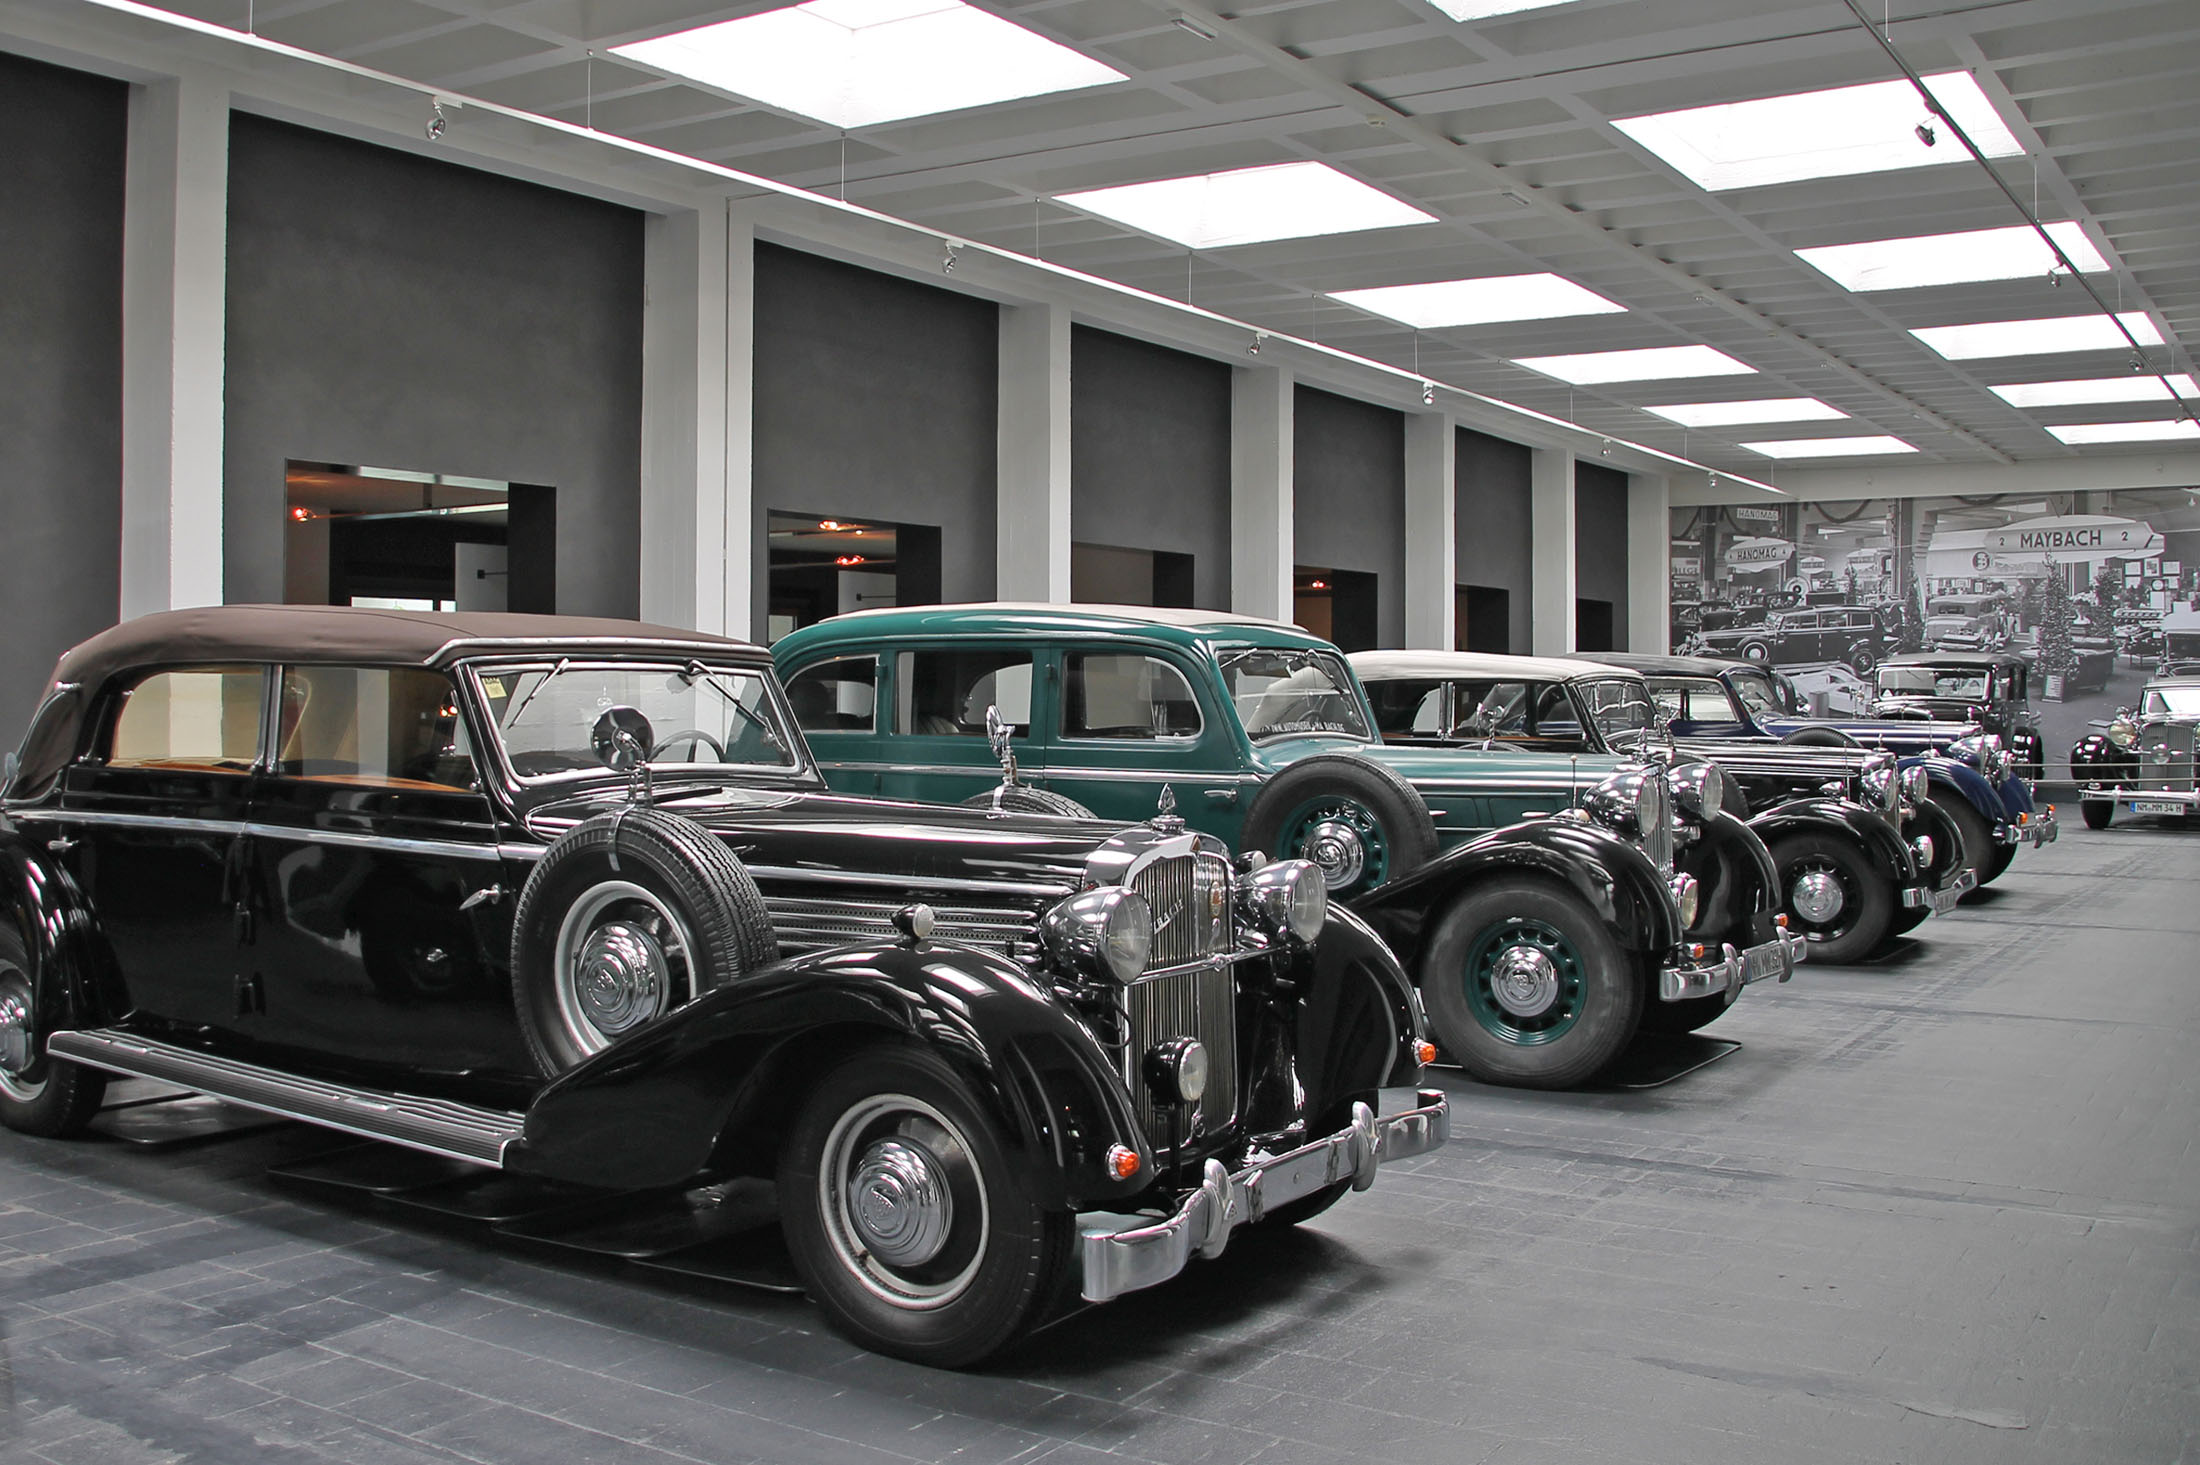 Museum for Historical Maybach-cars in Neumarkt -  Neumarkt Maybachmuseum